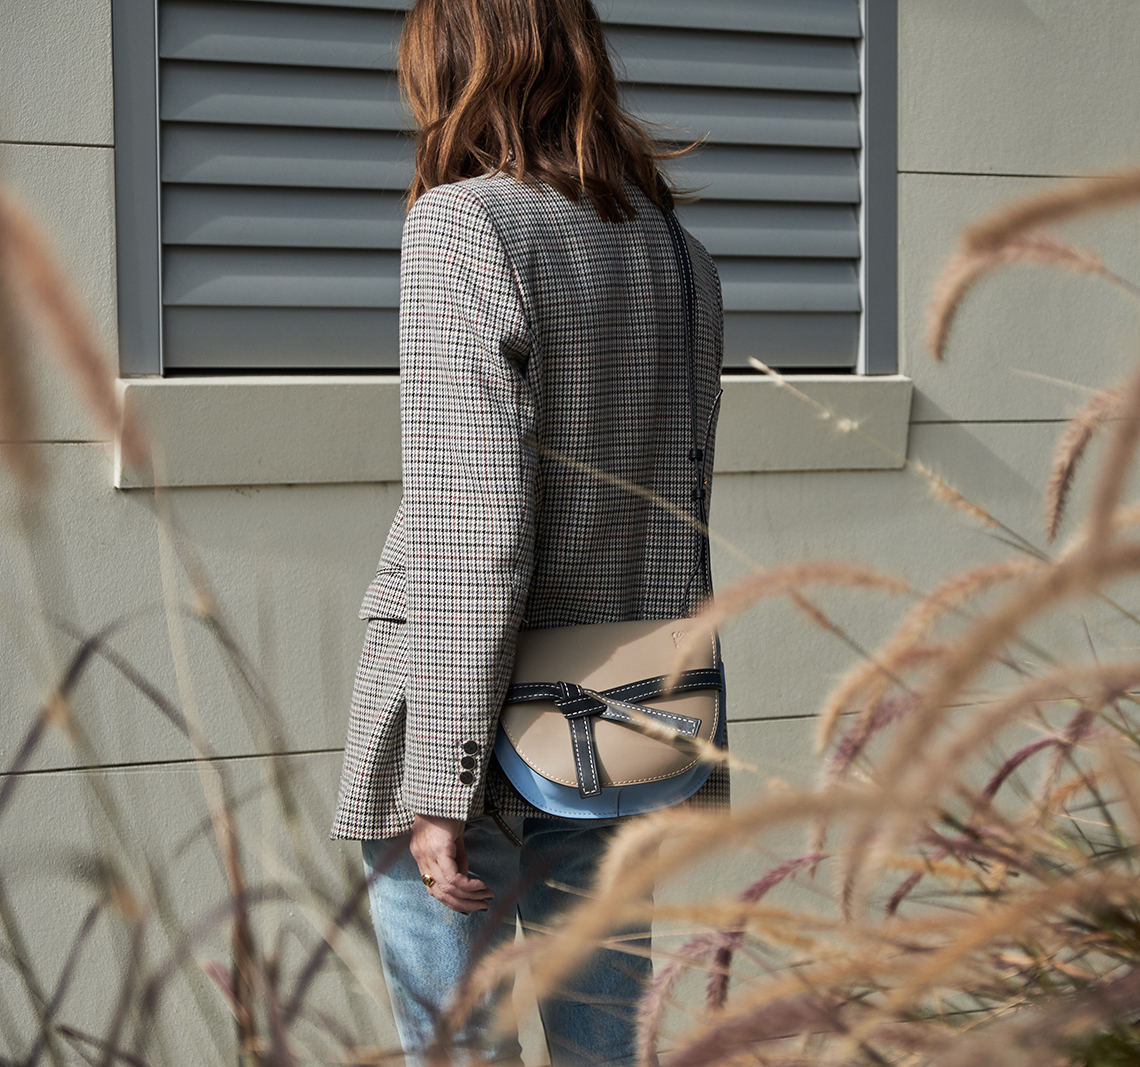 Loewe, Gate, Bag, Balenciaga, Outfit, Boots, Frame, Denim, Jeans